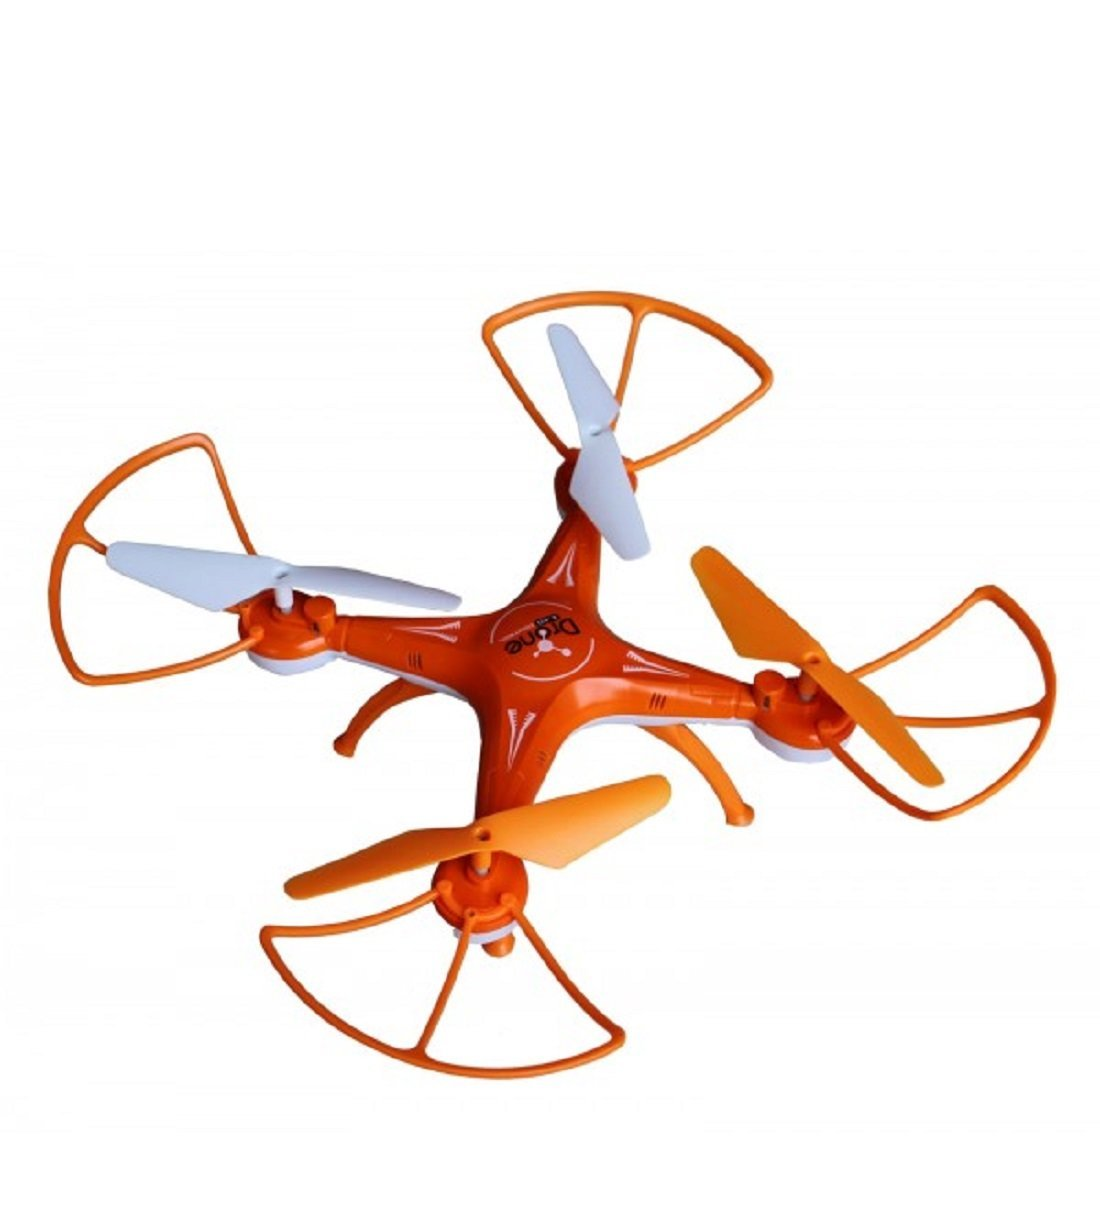 Best Drone Under 10000 In India